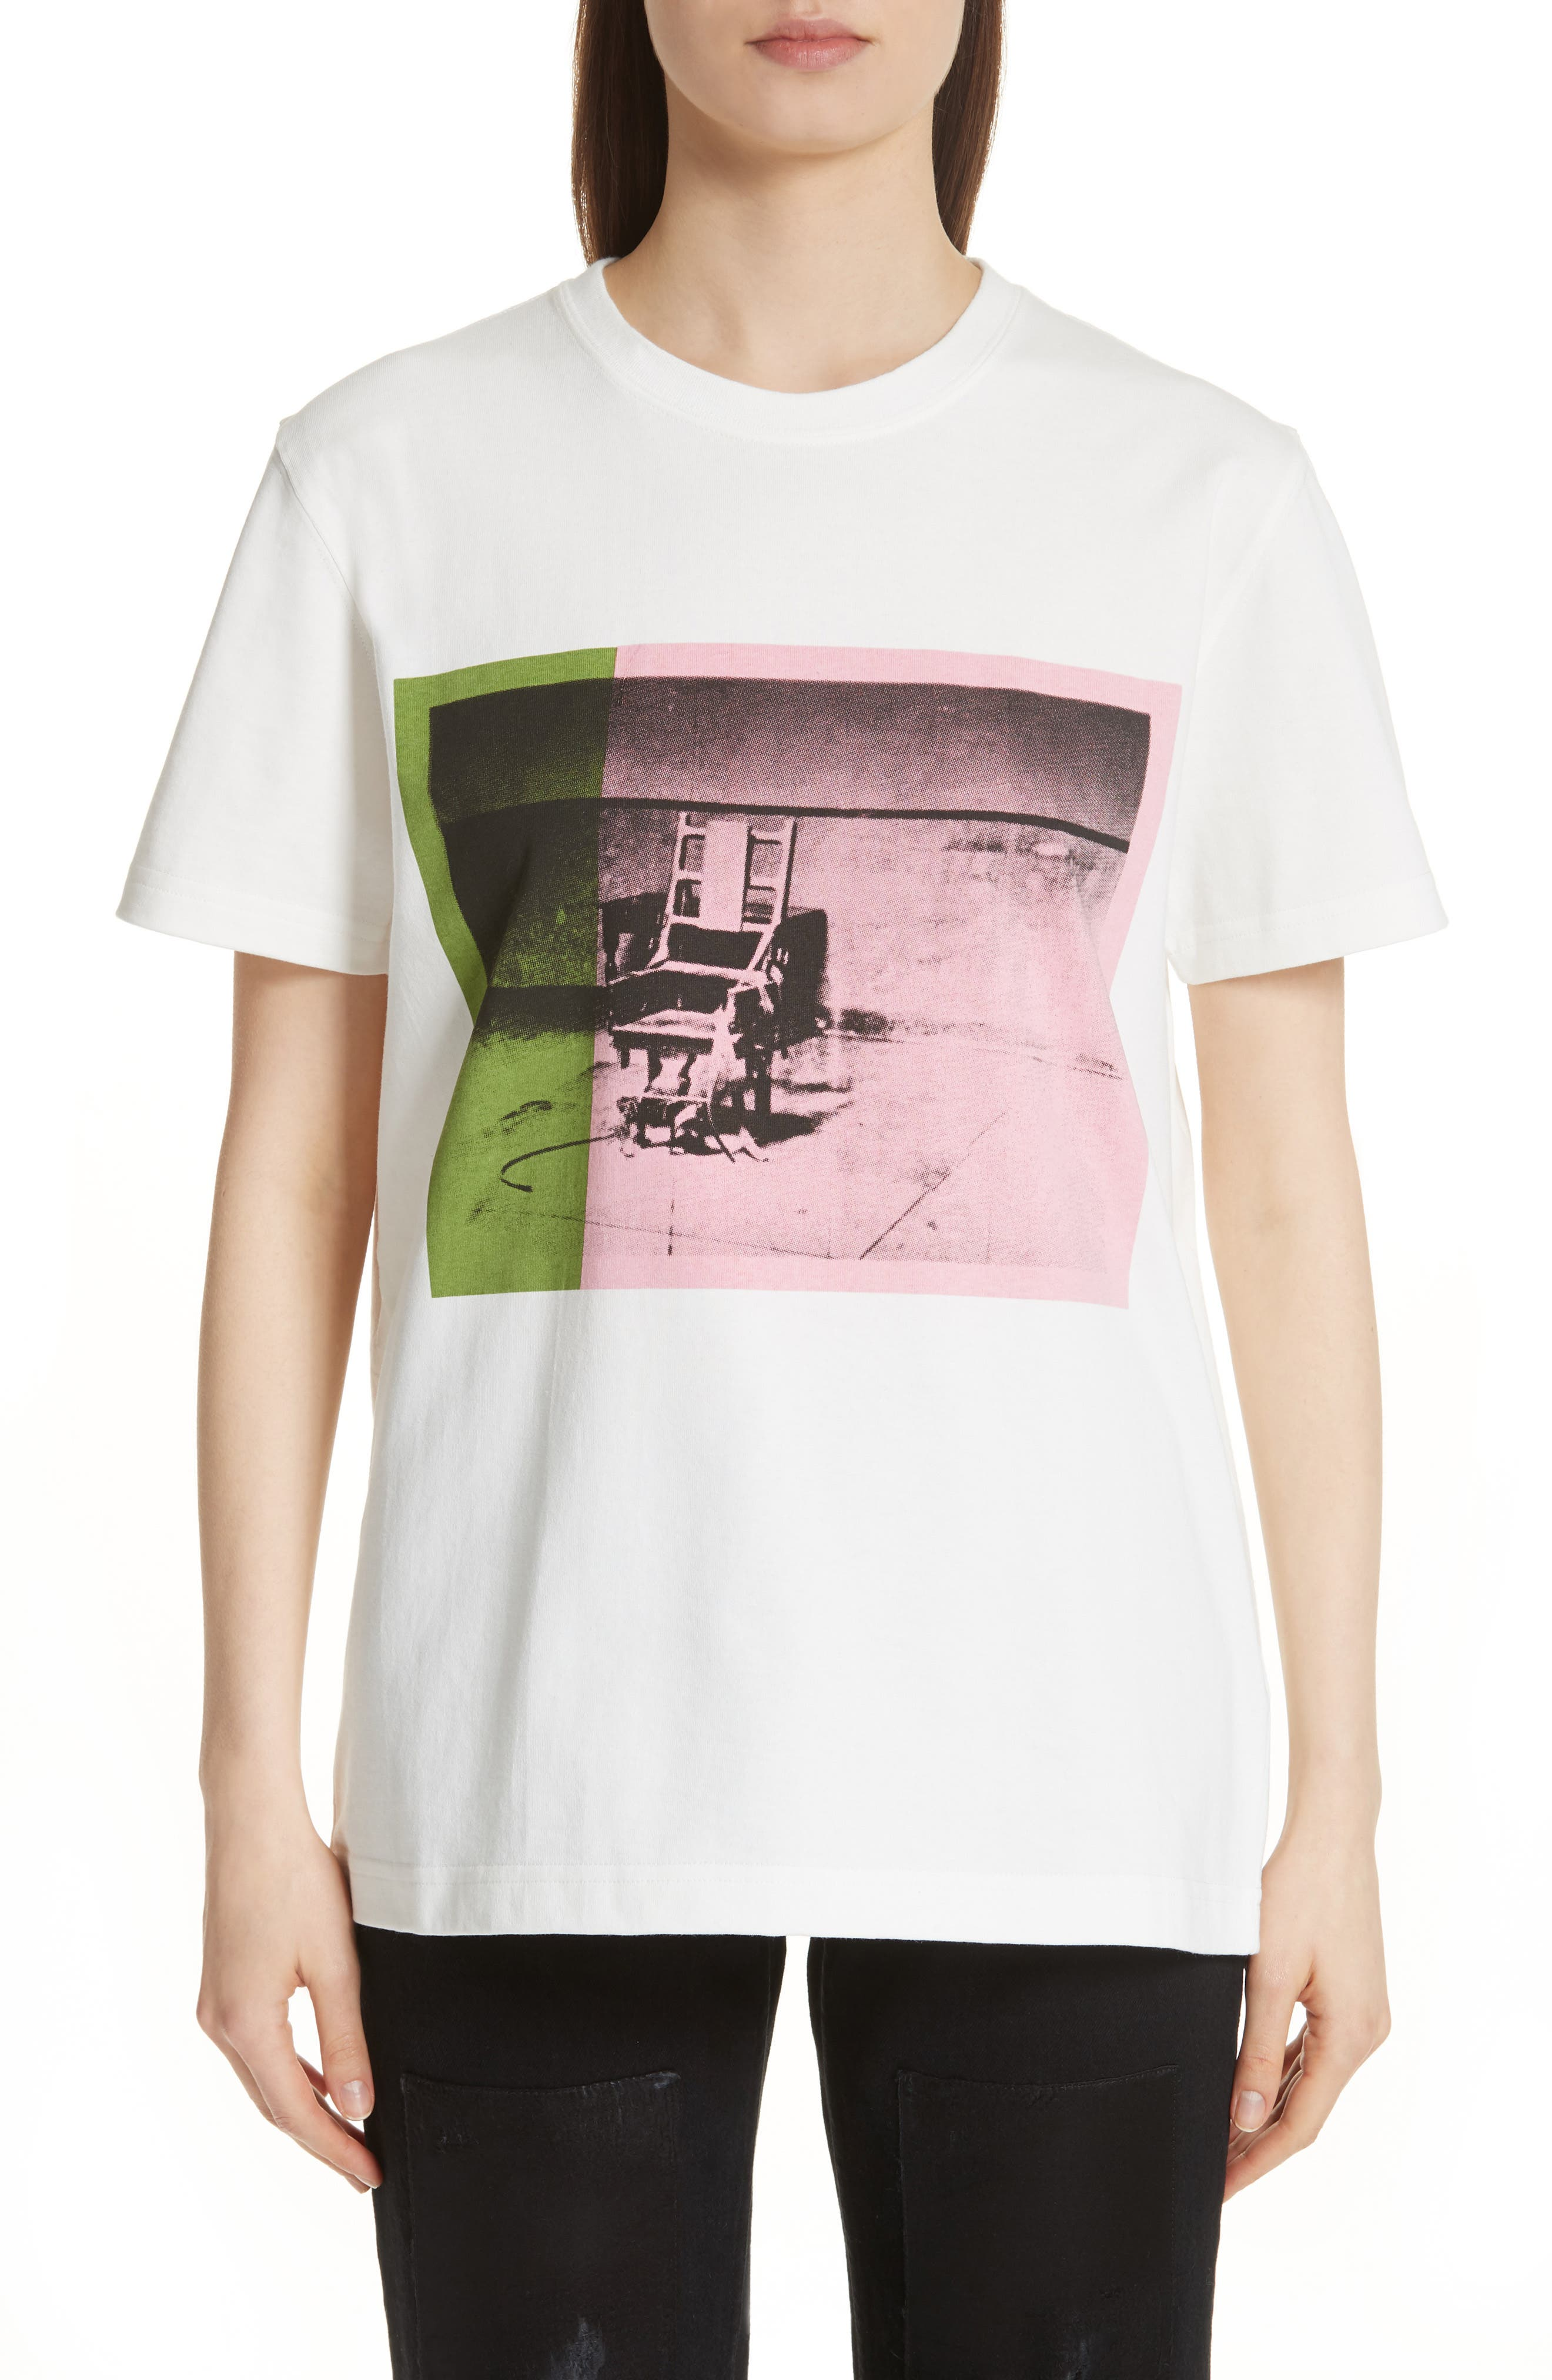 x Andy Warhol Foundation Electric Chair Graphic Tee,                         Main,                         color, White/ Pink/ Green